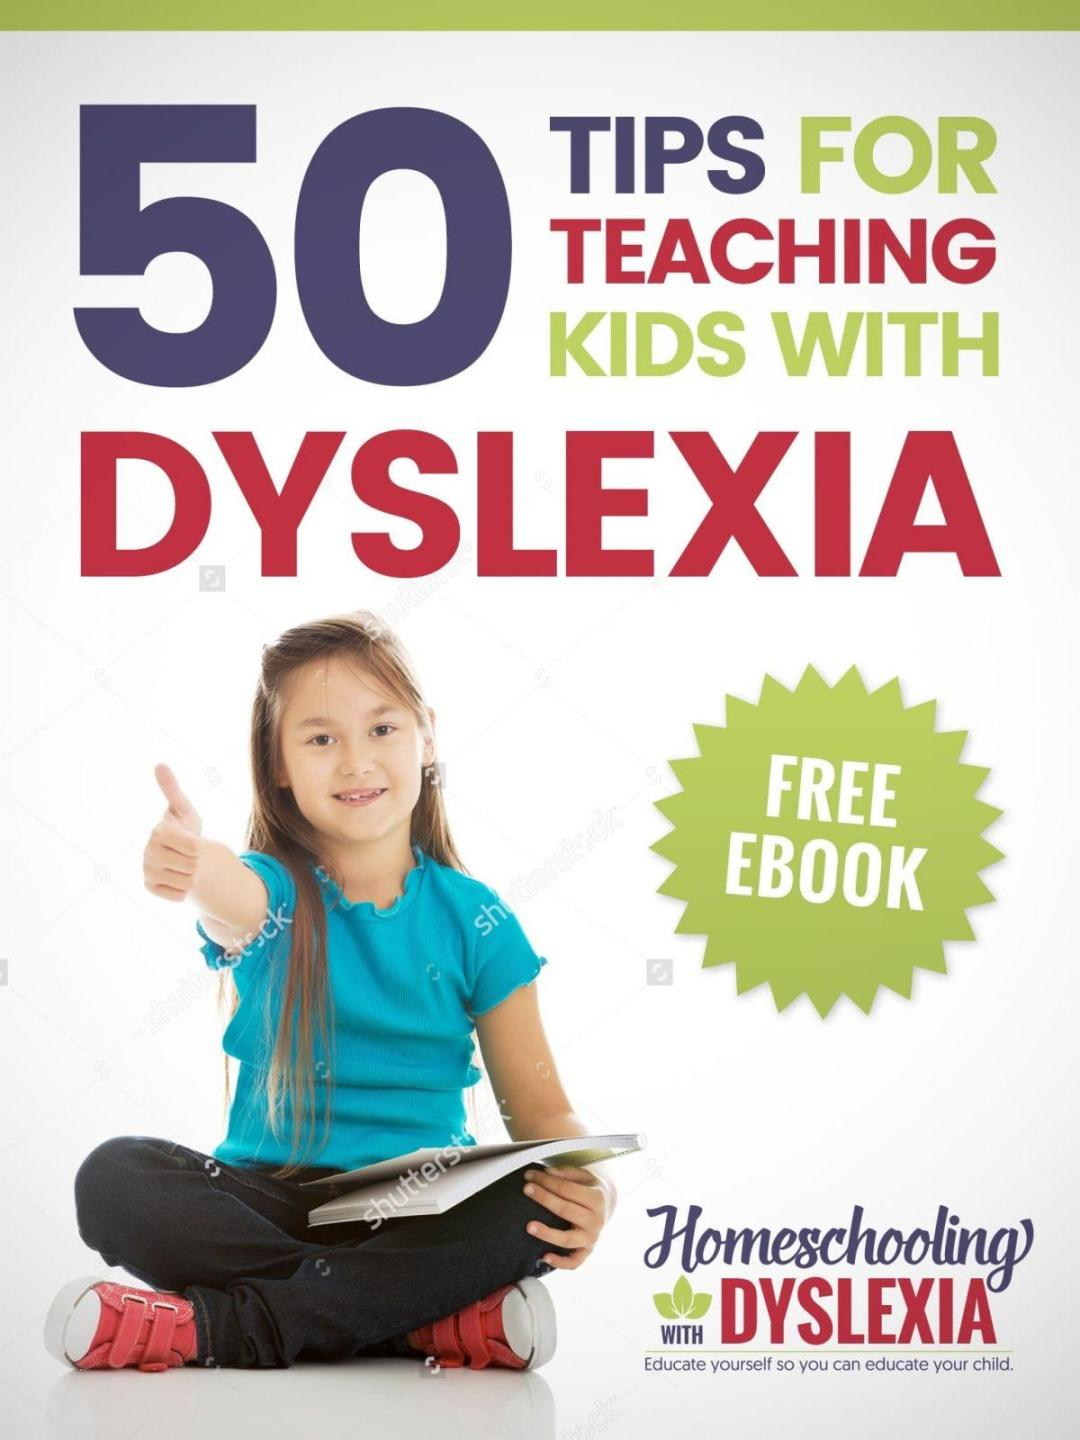 Understanding Dyslexia And How To Help Kids Who Have It >> How To Teach Kids With Dyslexia To Read Homeschooling With Dyslexia